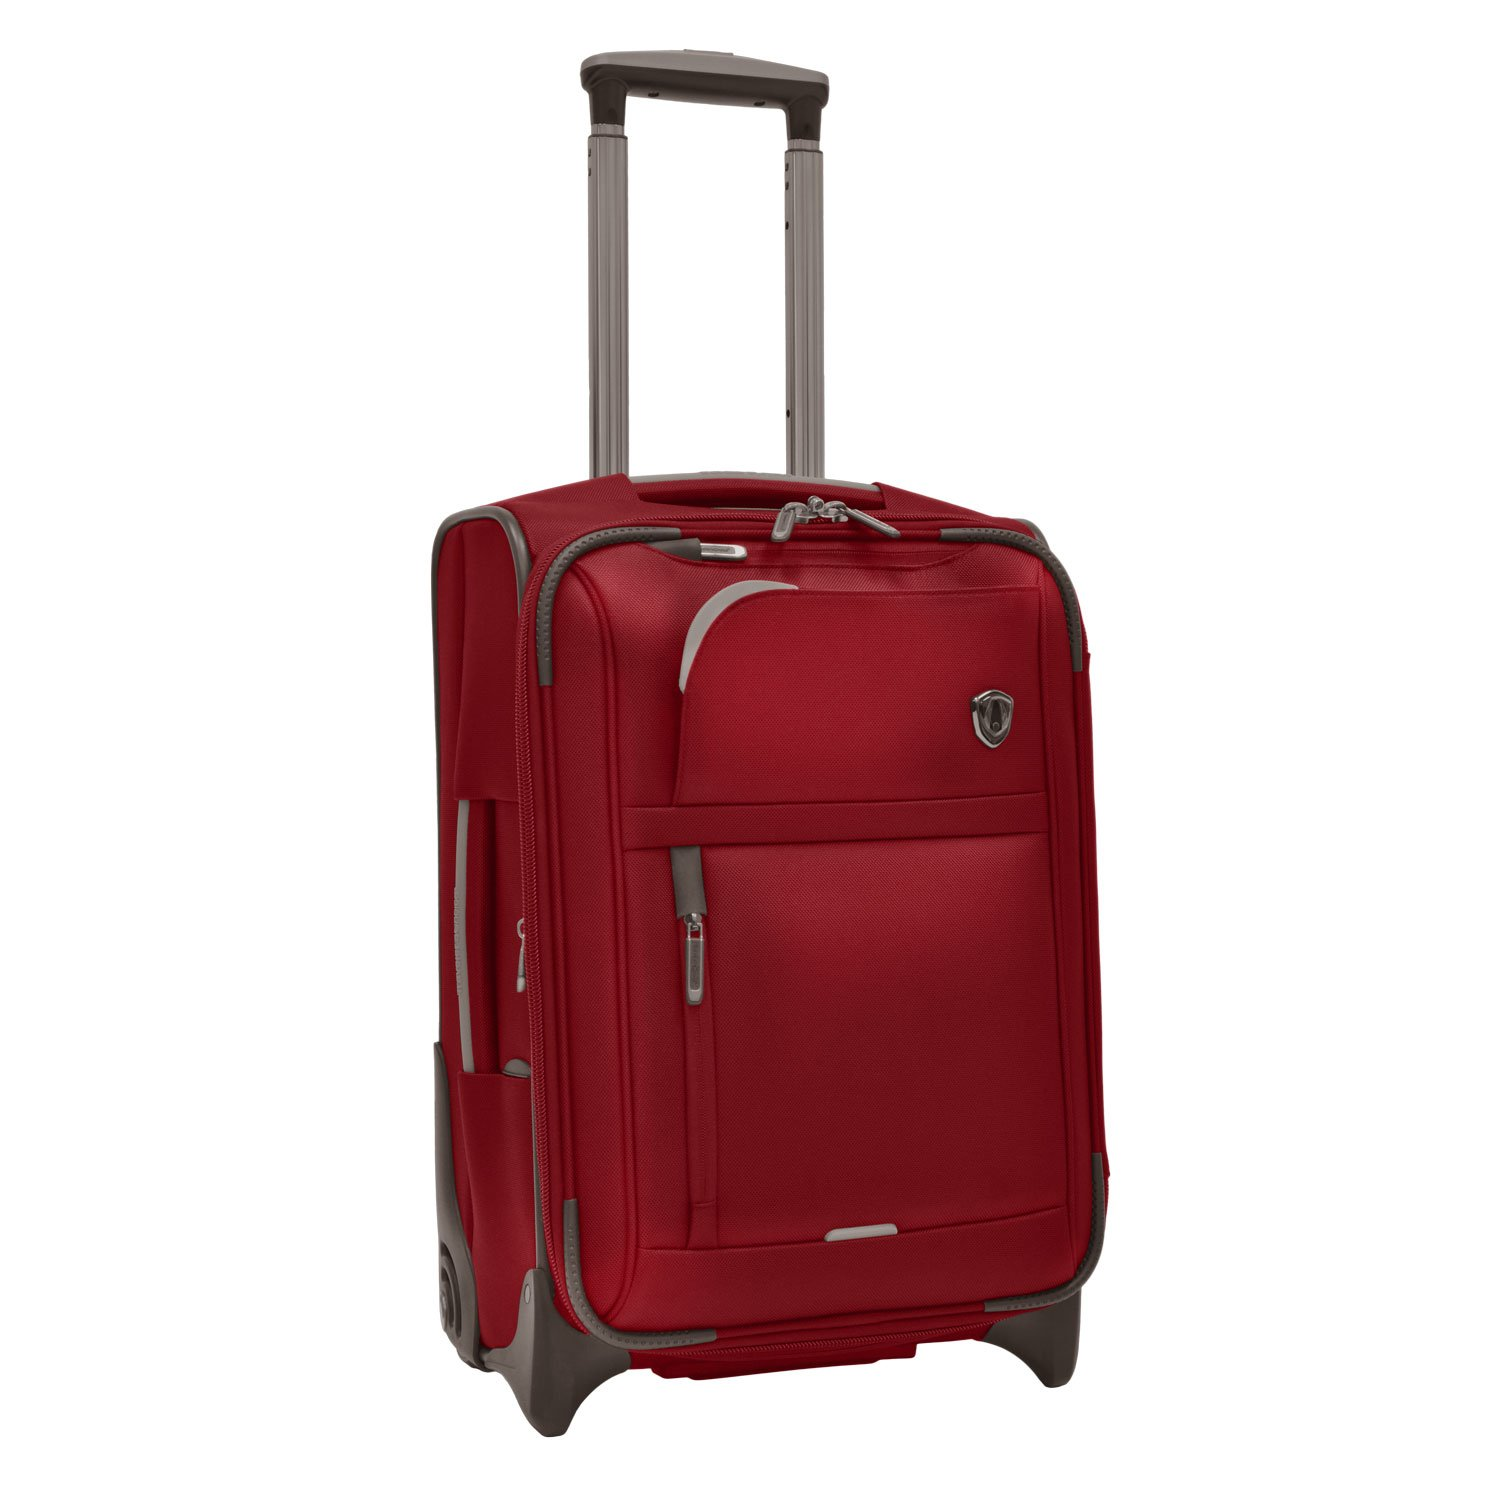 Traveler's Choice Birmingham 21-Inch Expandable Rollaboard, Red, One Size Traveler' s Choice TC0840R21